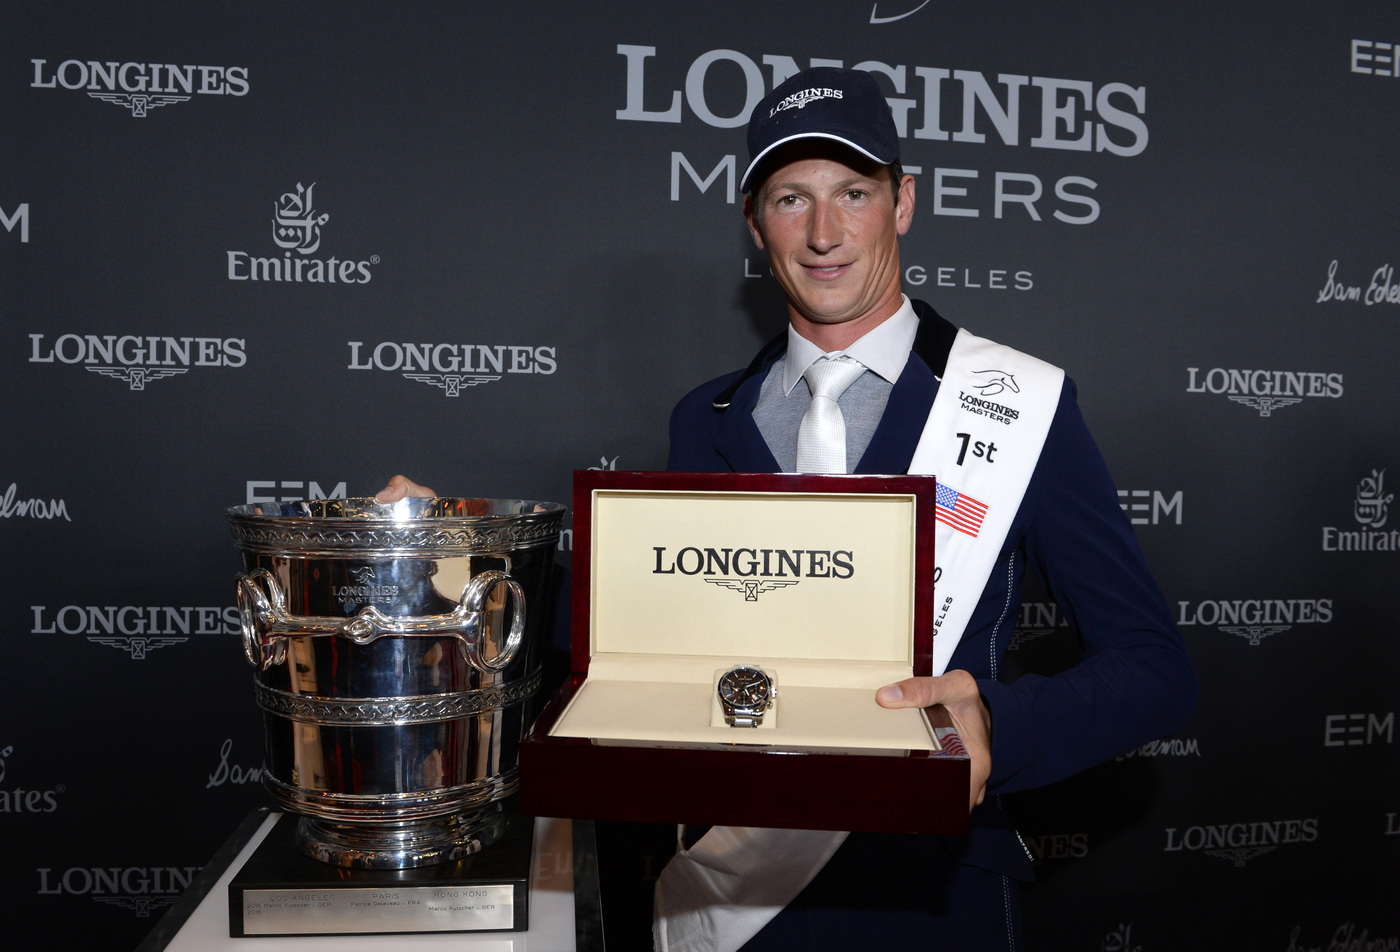 Longines Show Jumping Event: World-class sport, emotions and refinement at the Longines Masters of Los Angeles 2